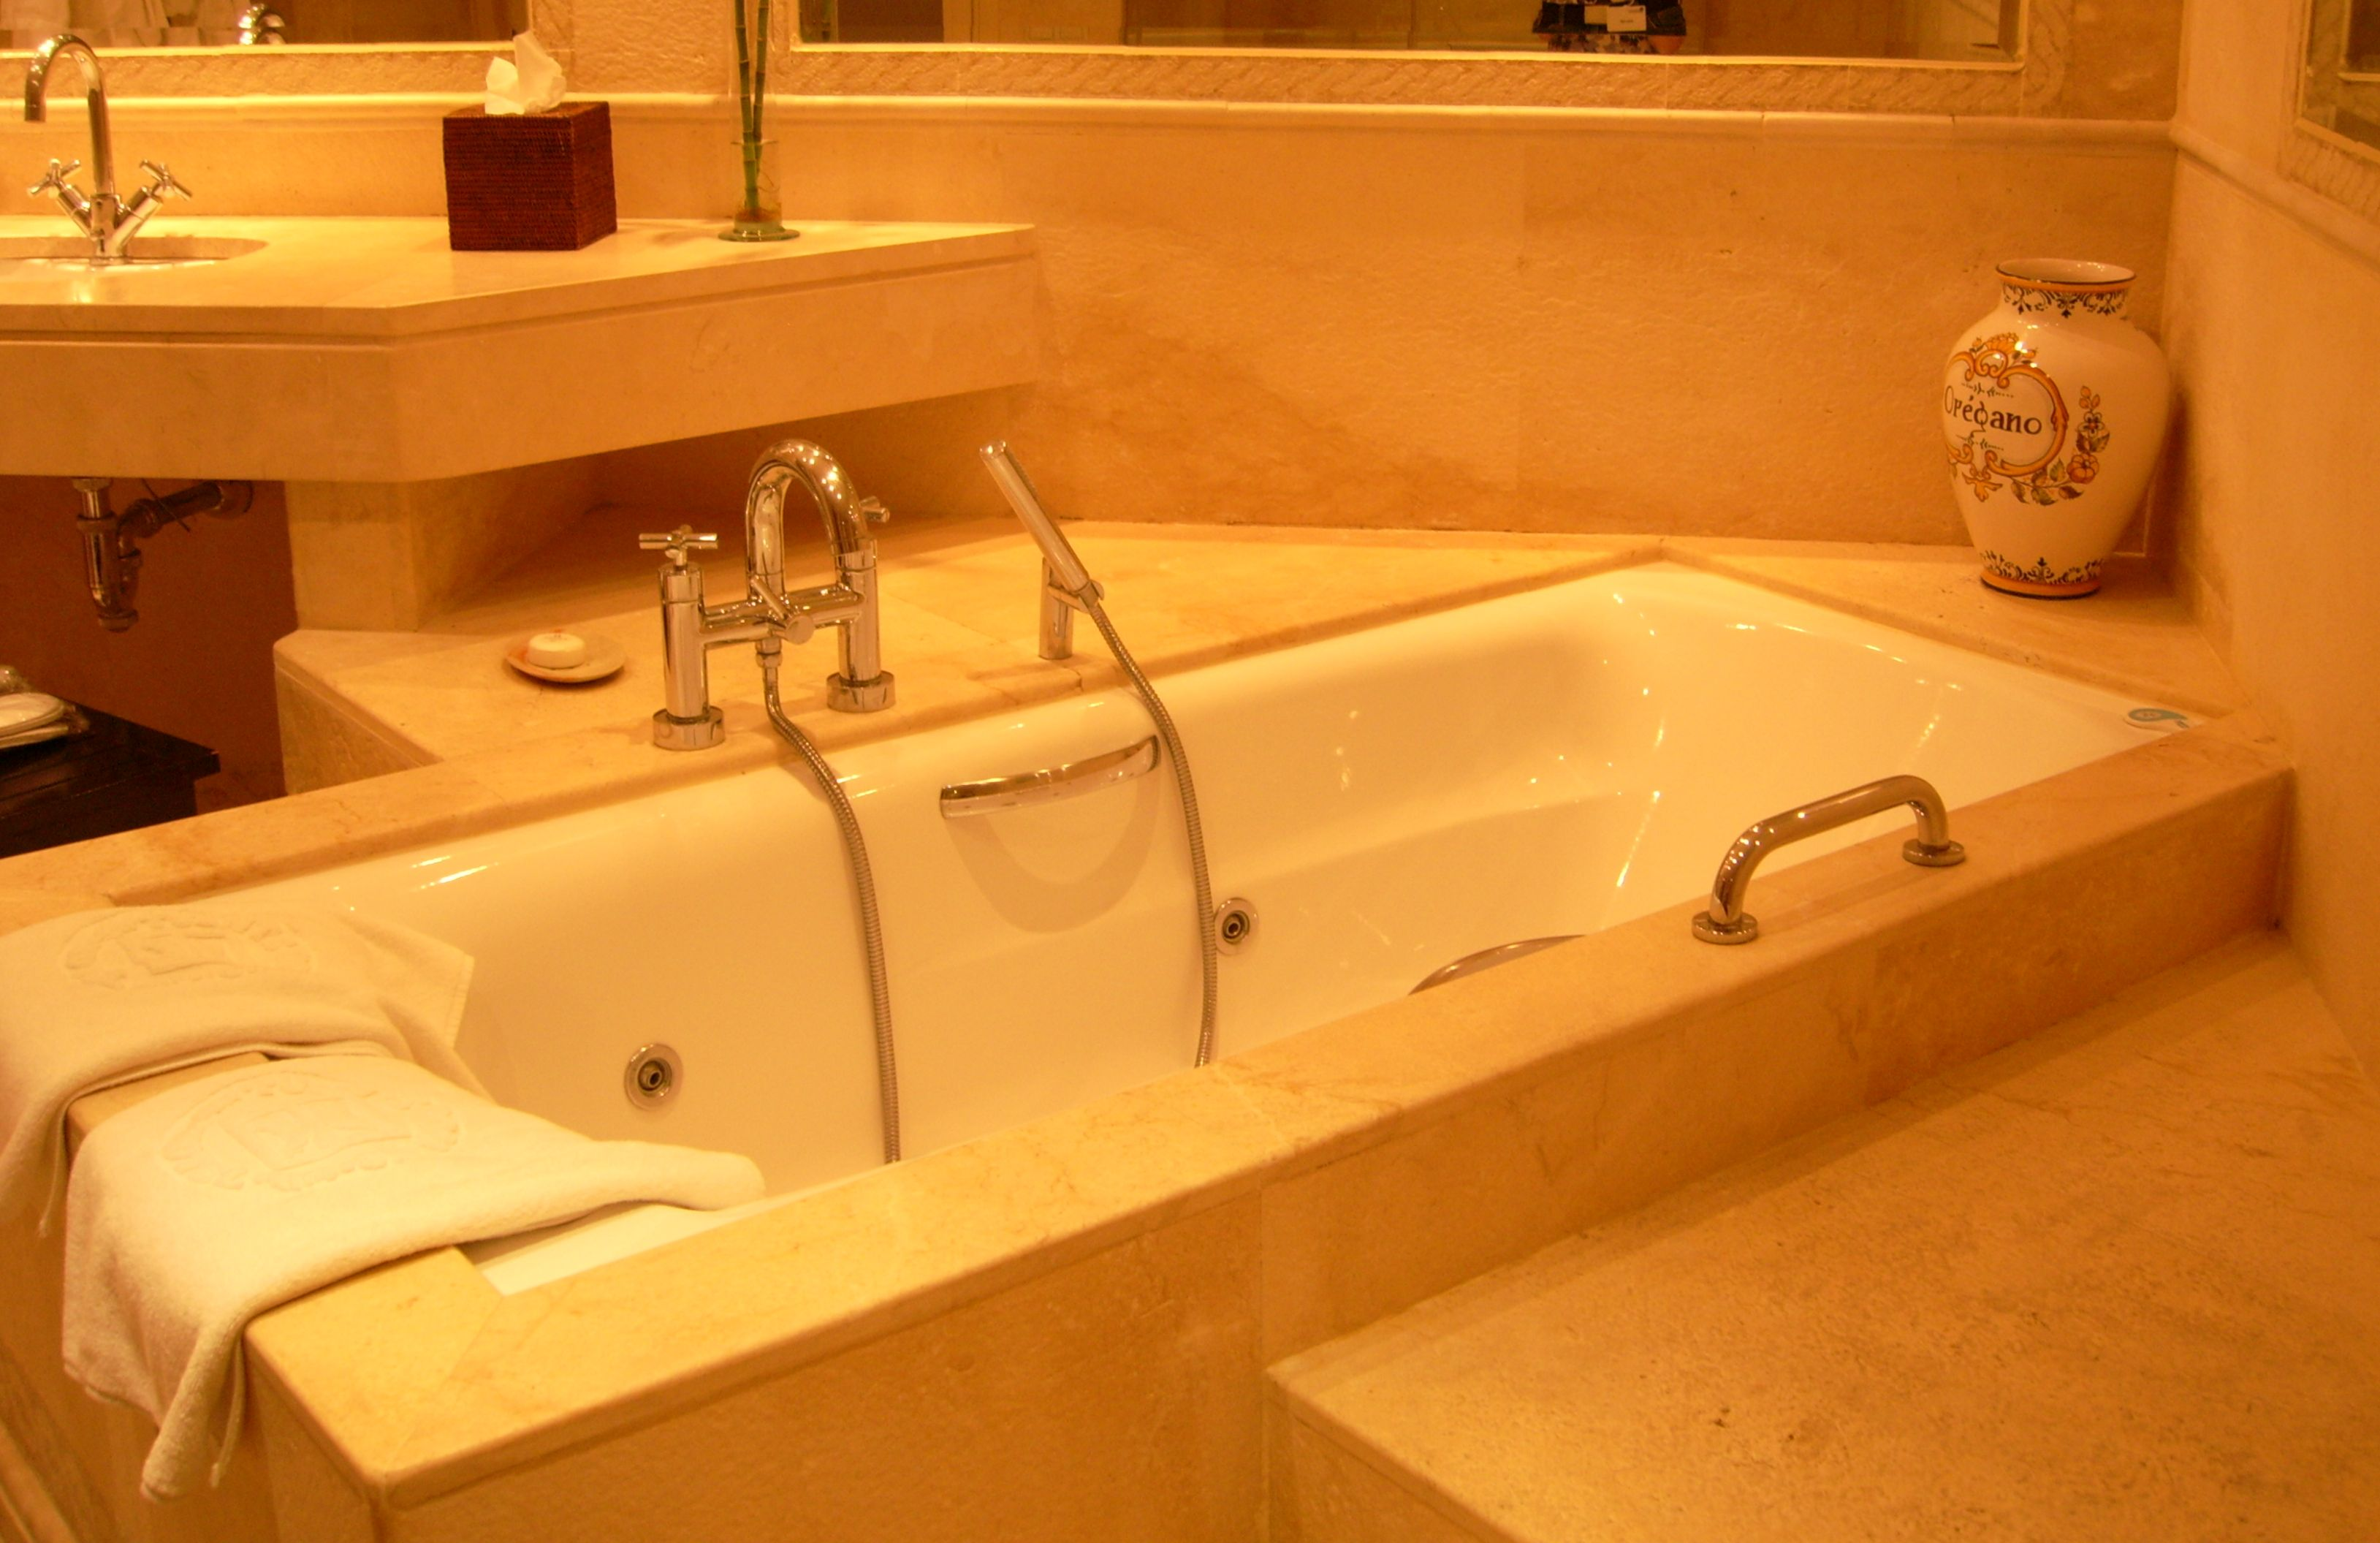 Hot Tub In Room Hotels Indianapolis